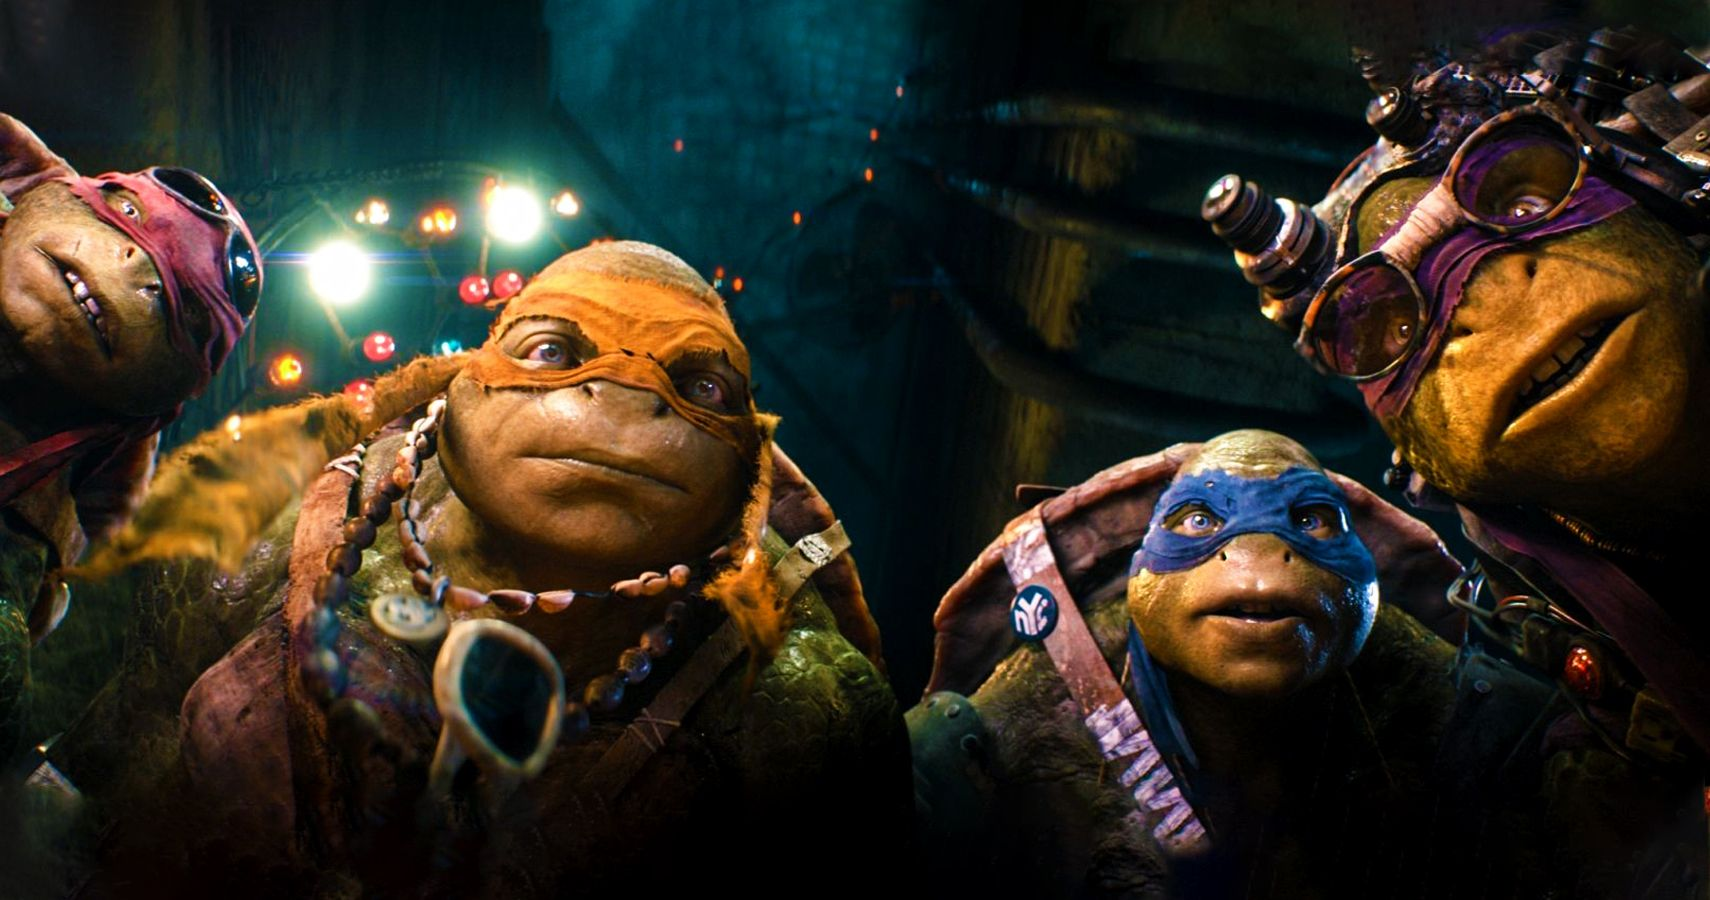 The 15 Worst Versions Of The Teenage Mutant Ninja Turtles And The 10 Best